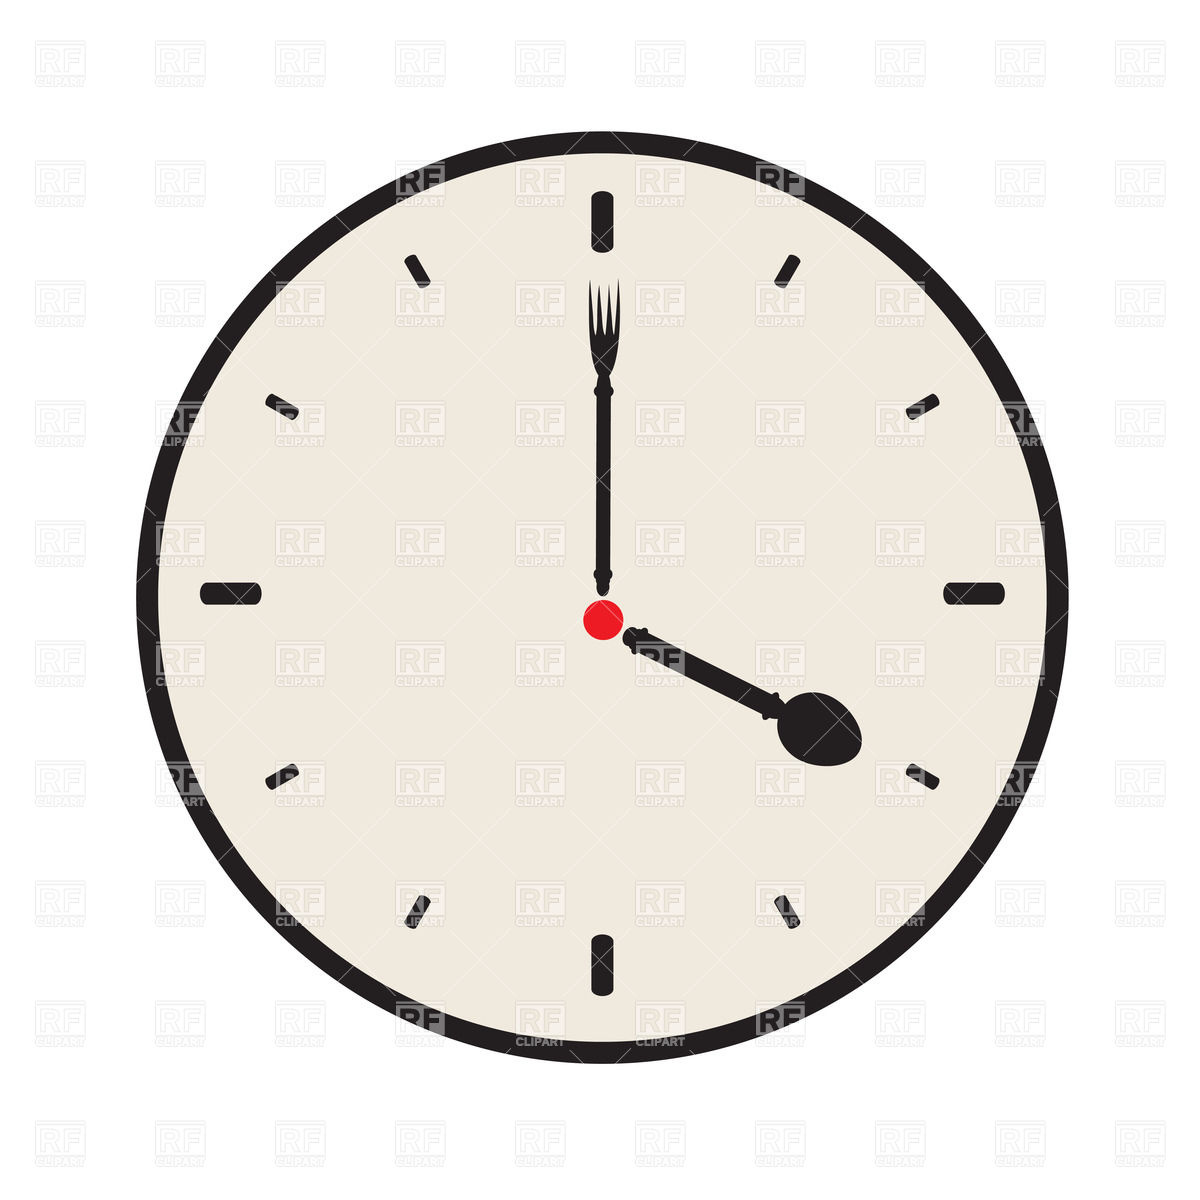 1200x1200 Simple Clock Dial With Fork And Spoon Instead Of Arrows